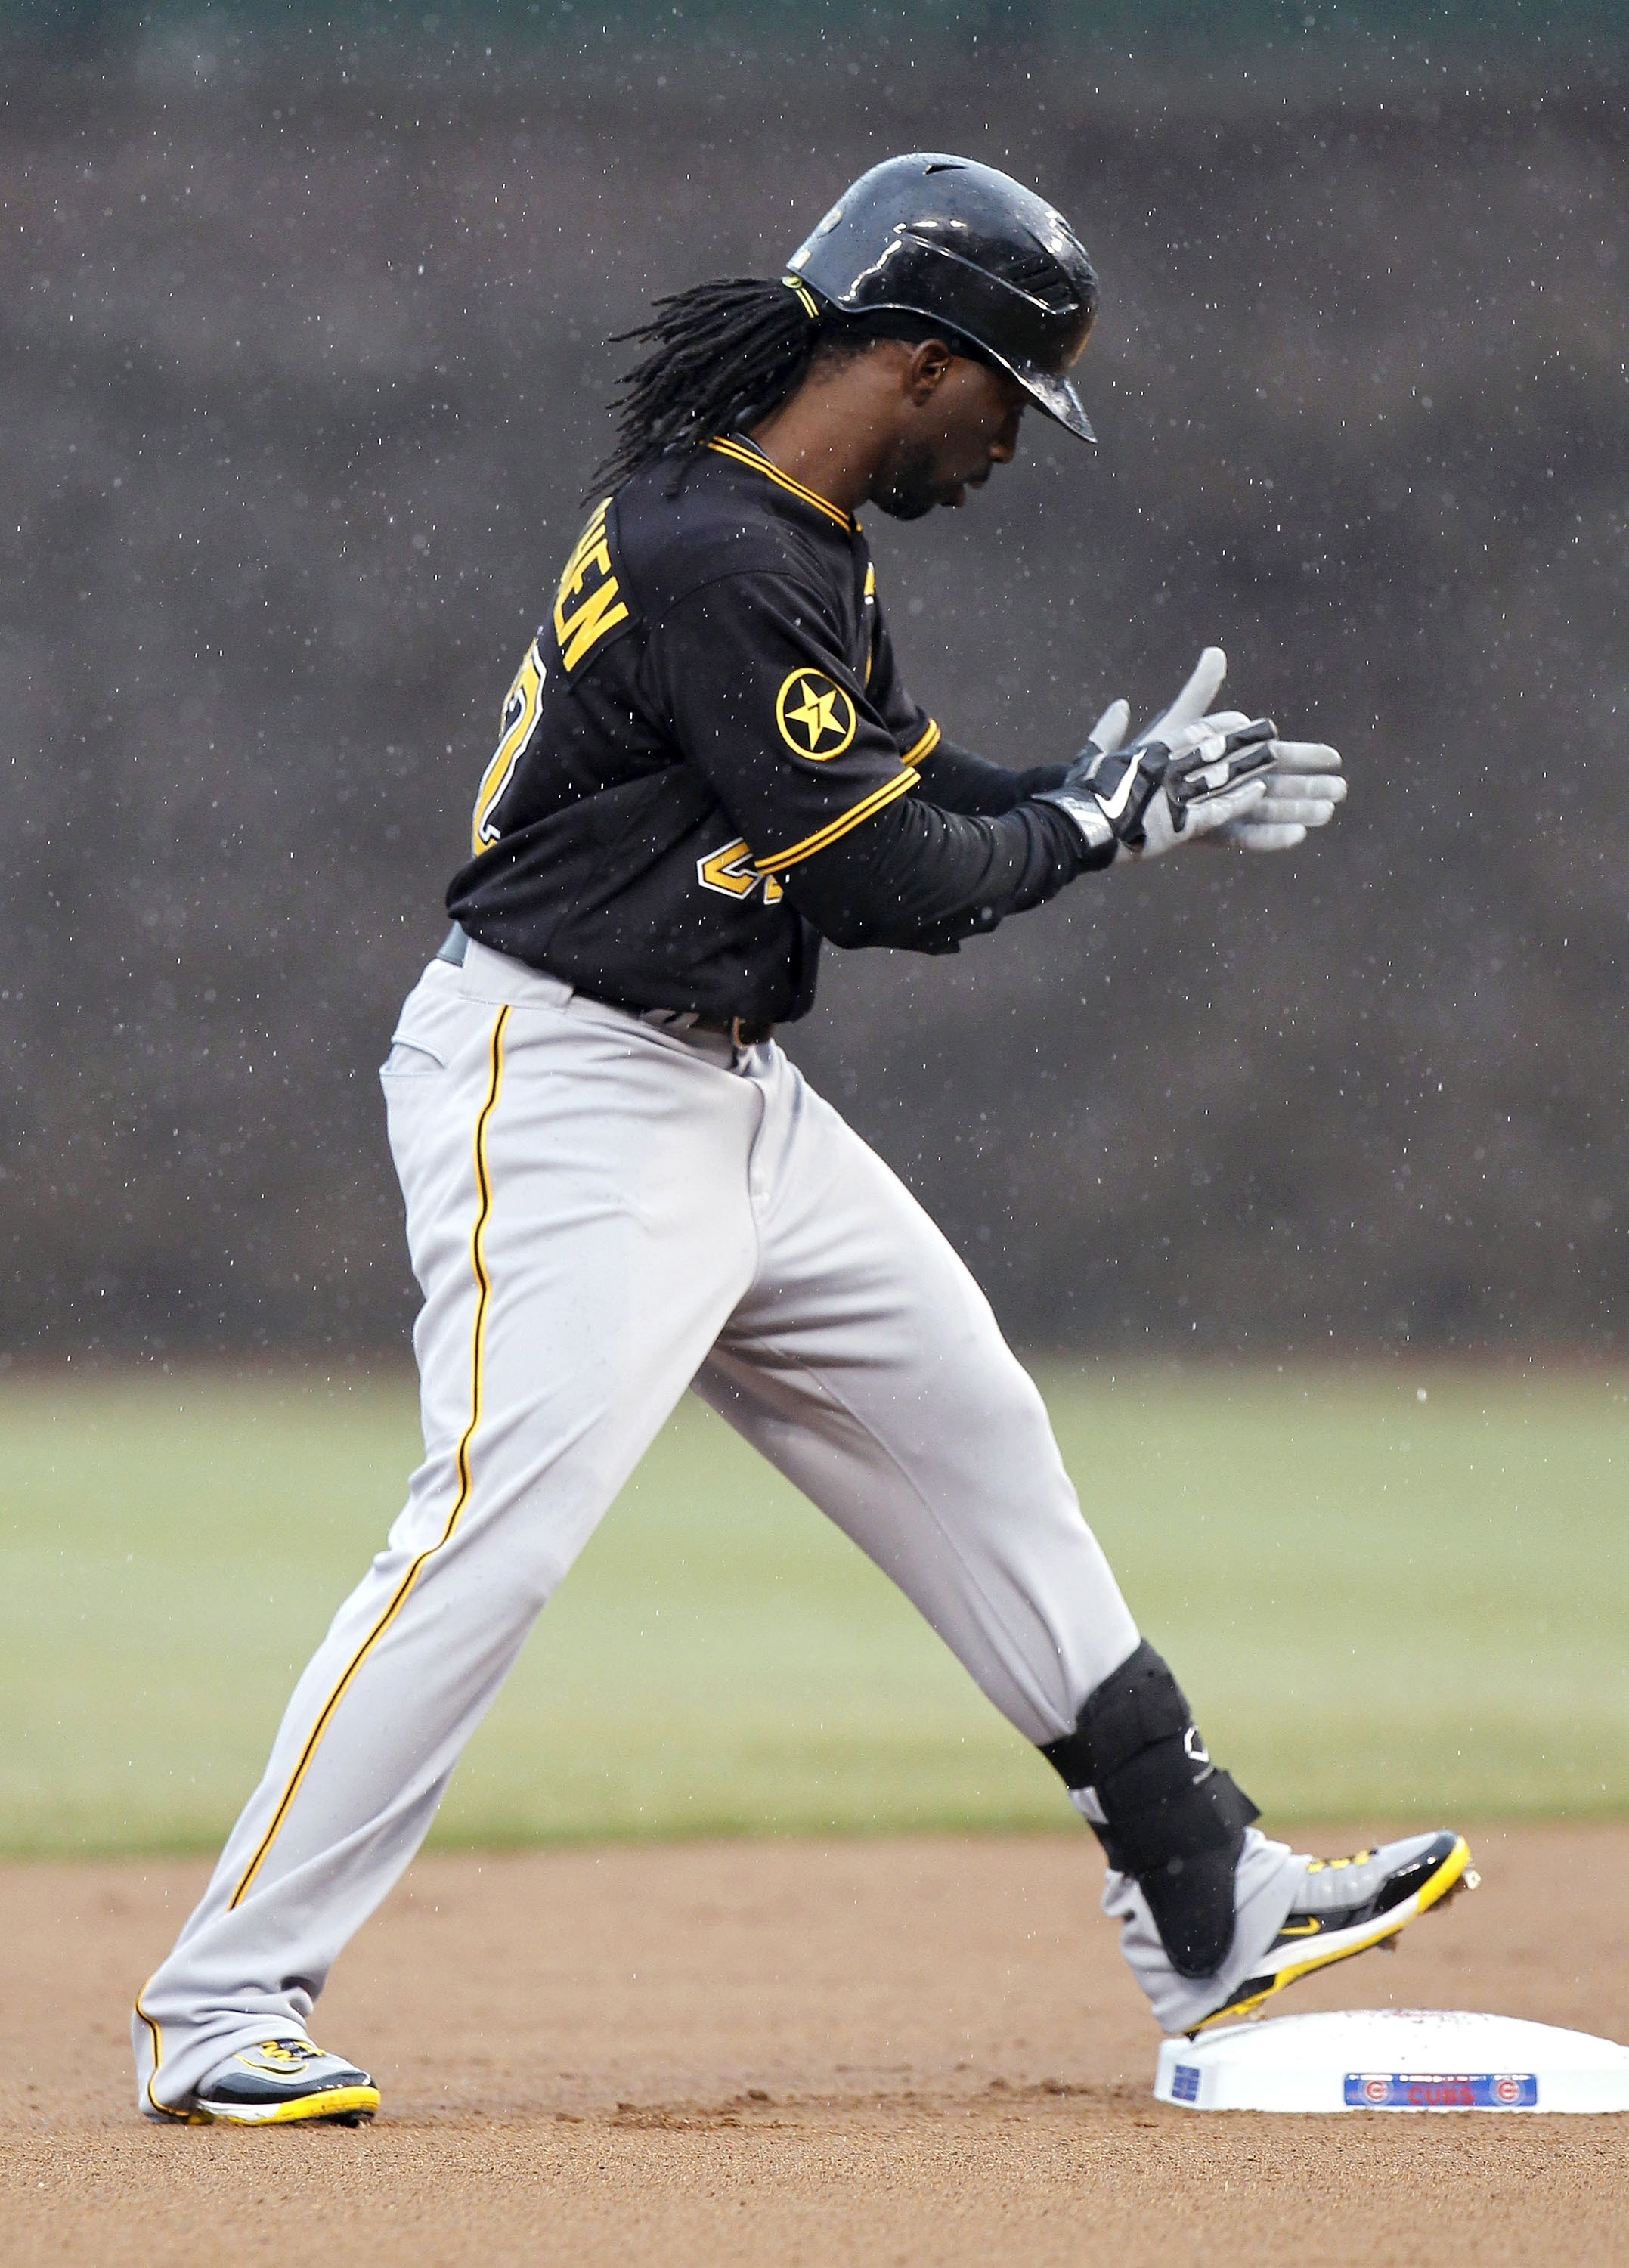 CHICAGO, IL - APRIL 01:  Andrew McCutchen #22 of the Pittsburgh Pirates reacts after hitting a first inning double while playing the Chicago Cubs on opening day at Wrigley Field on April 1, 2011 in Chicago, Illinois. Pittsburgh won the game 6-3.  (Photo b